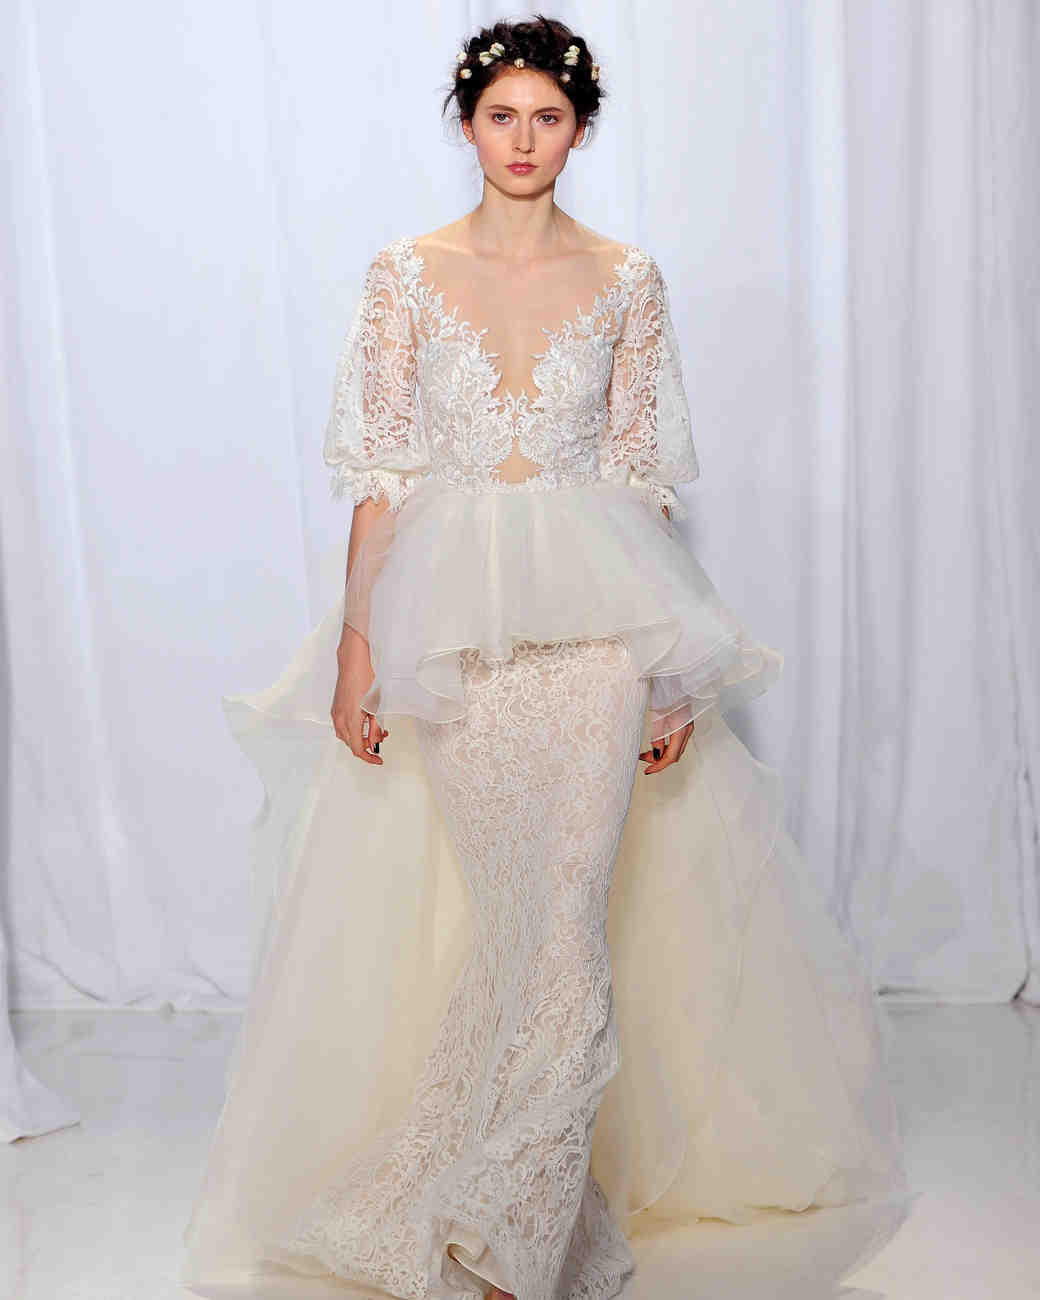 Reem Acra Fall 2017 Wedding Dress Collection